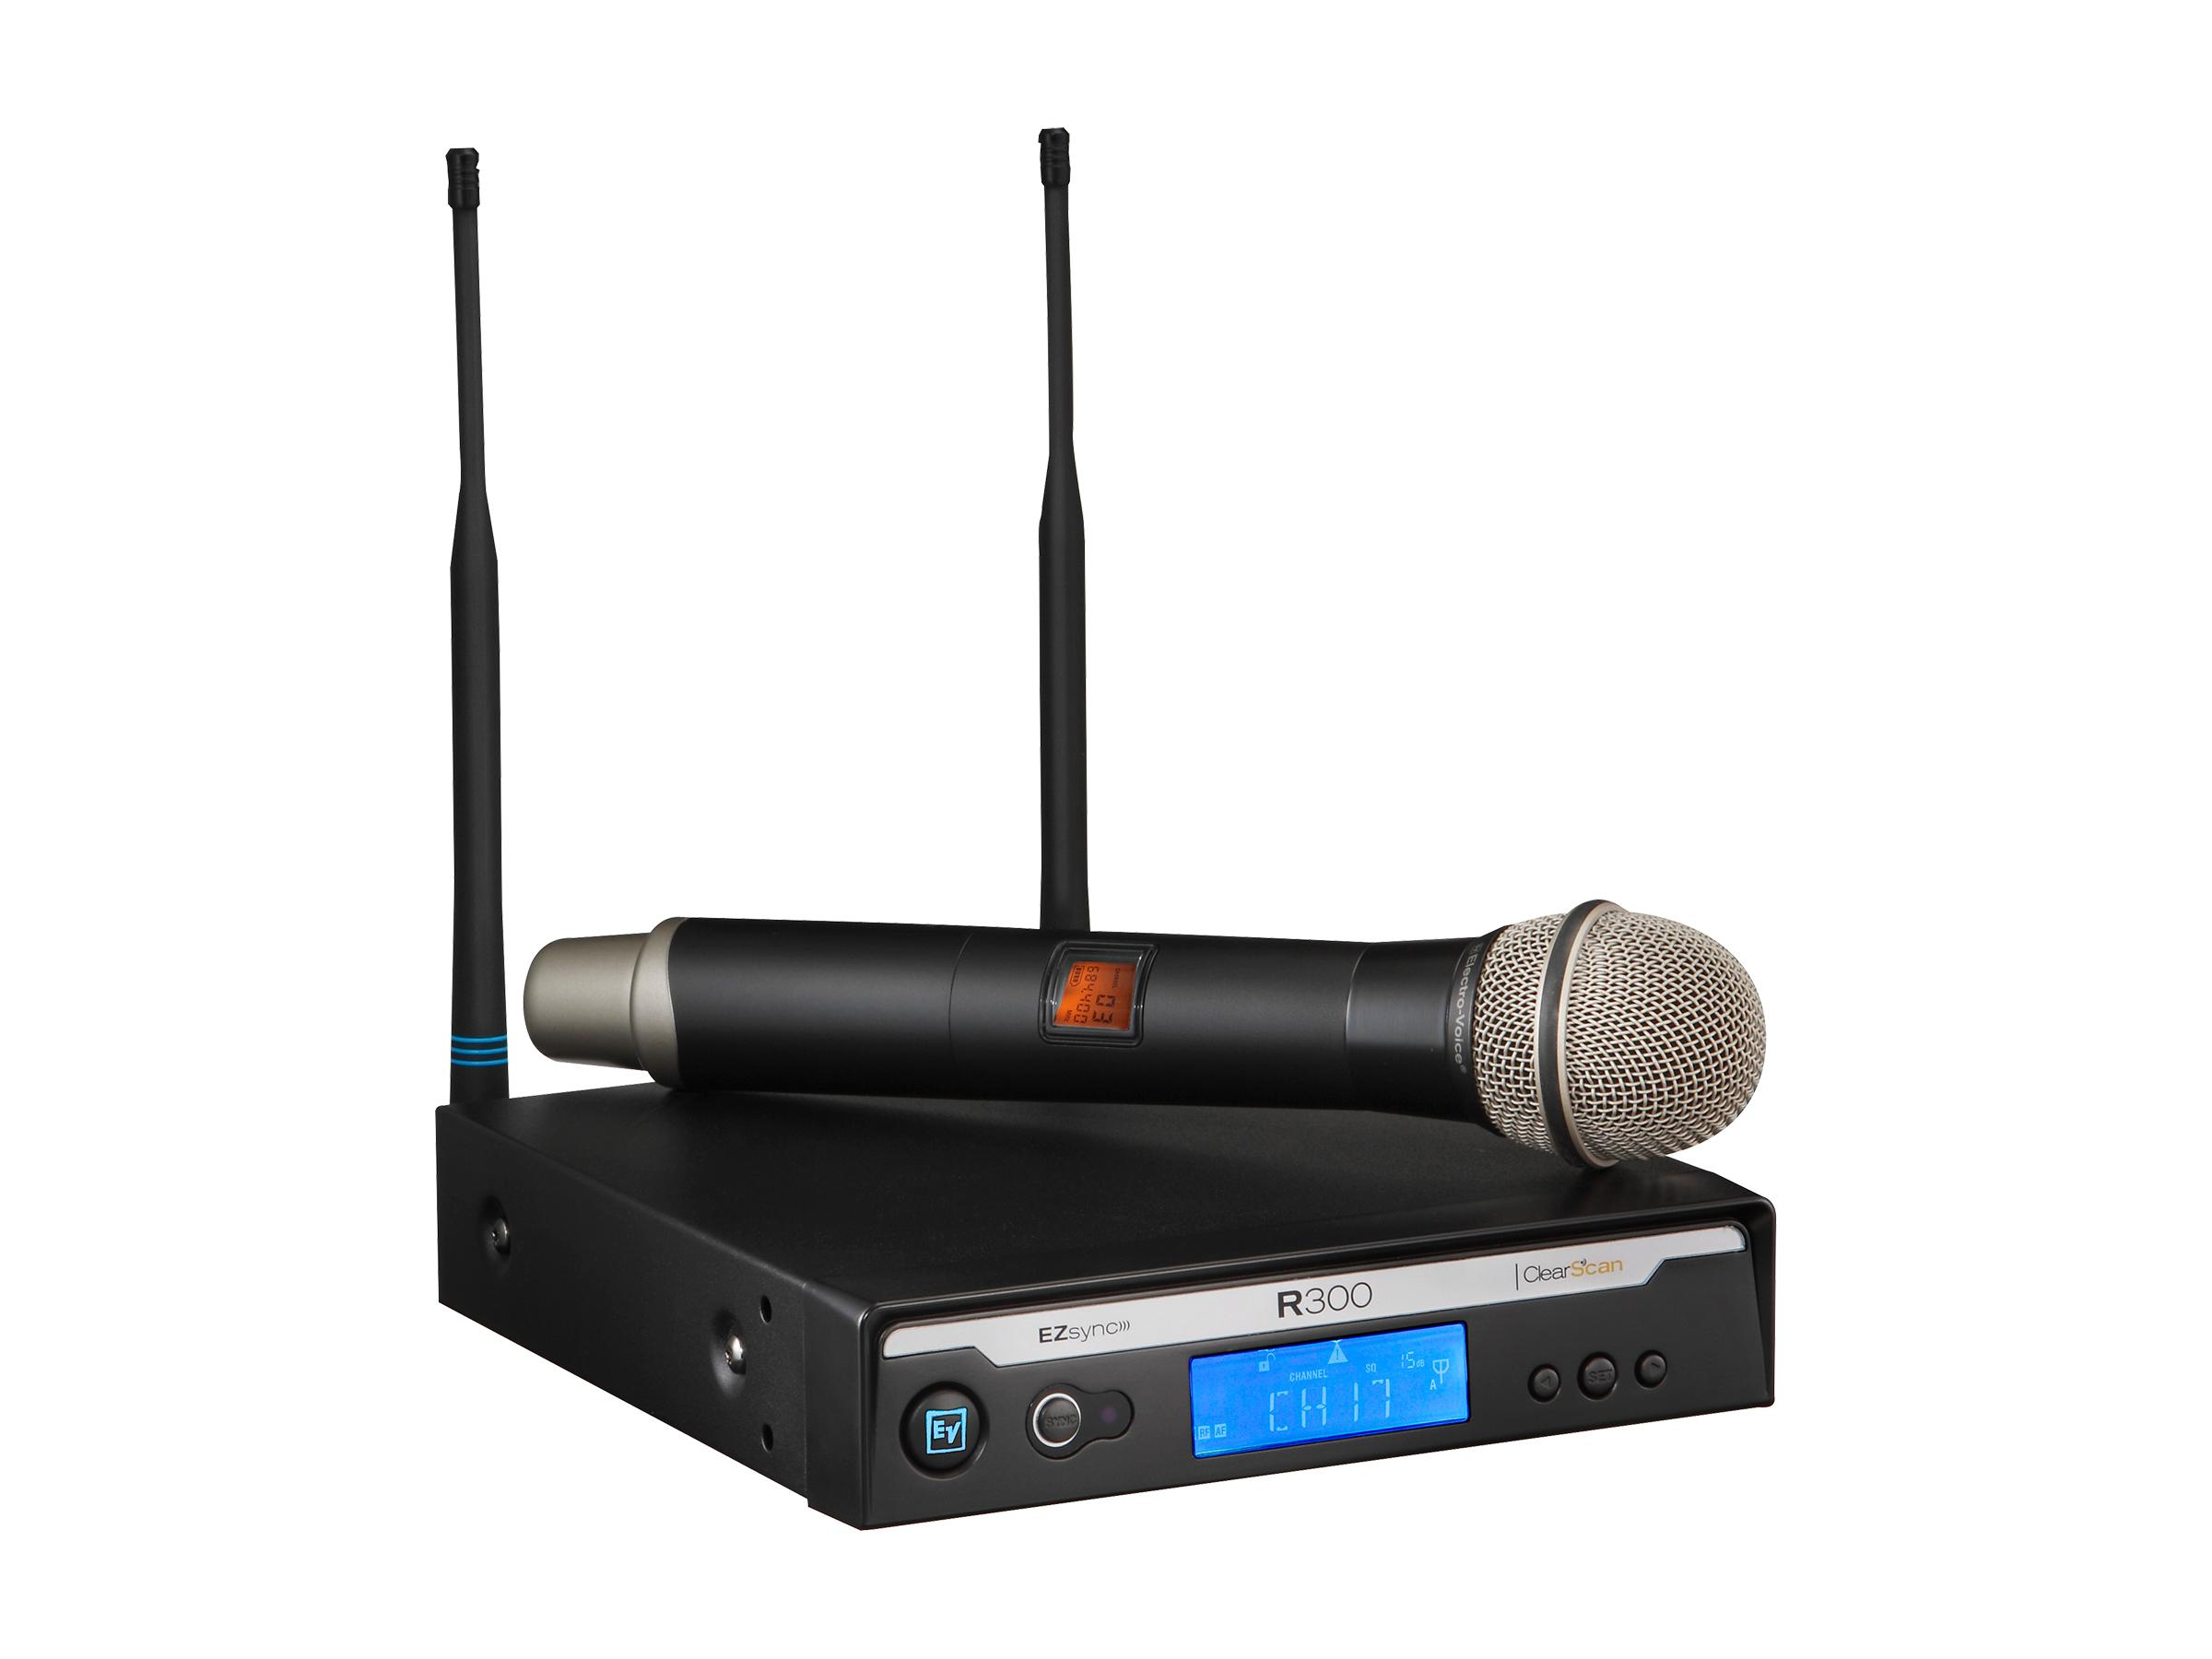 Electro-Voice R300HDC R300 Series Wireless Dynamic Cardioid PL22 Handheld Microphone System C-Band/516-532 MHz